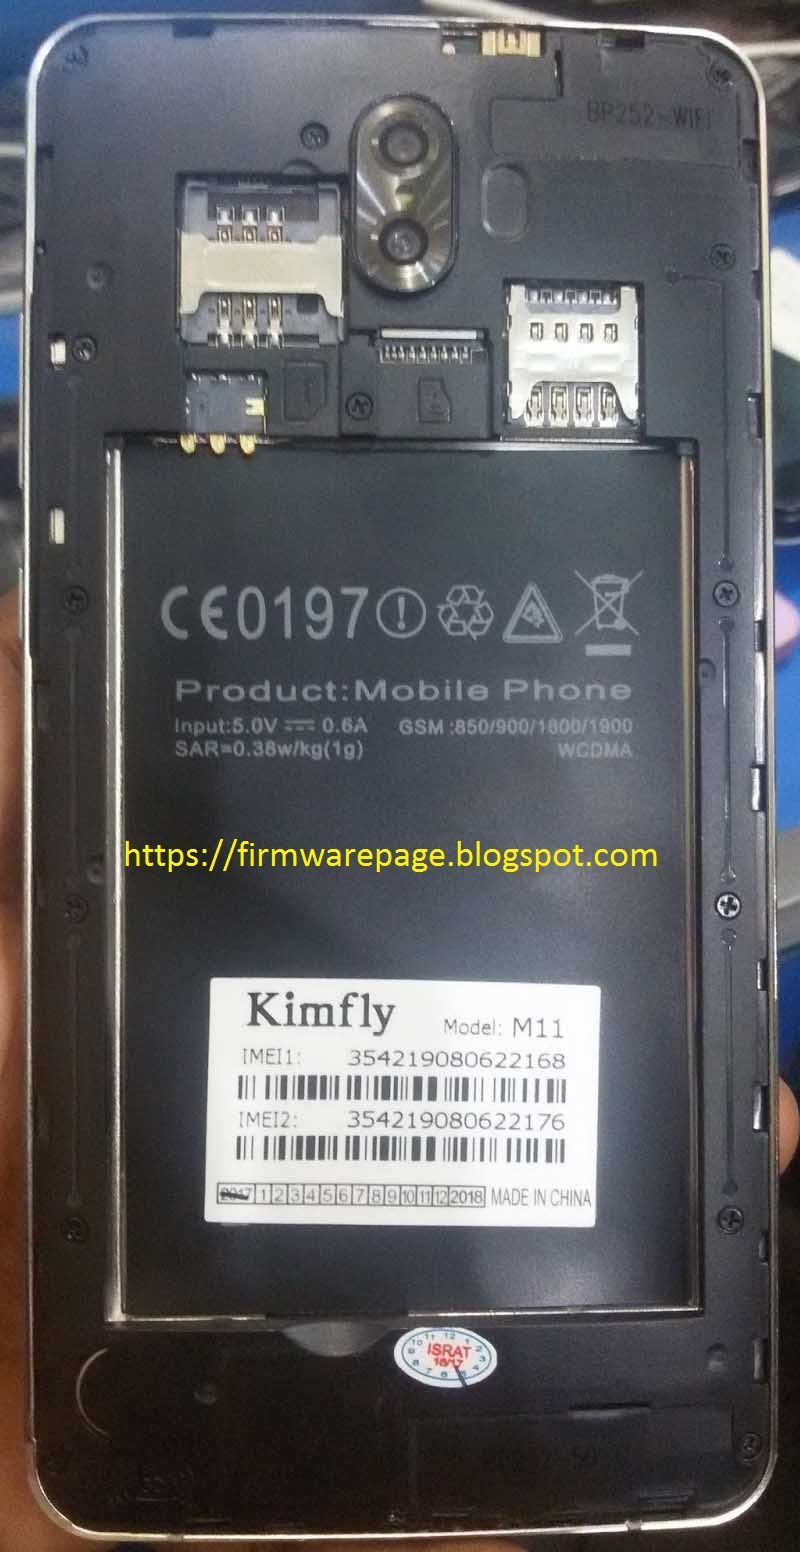 Huawei Kimfly M11 Blank Lcd Fix Stock Rom | Flash file & firmware